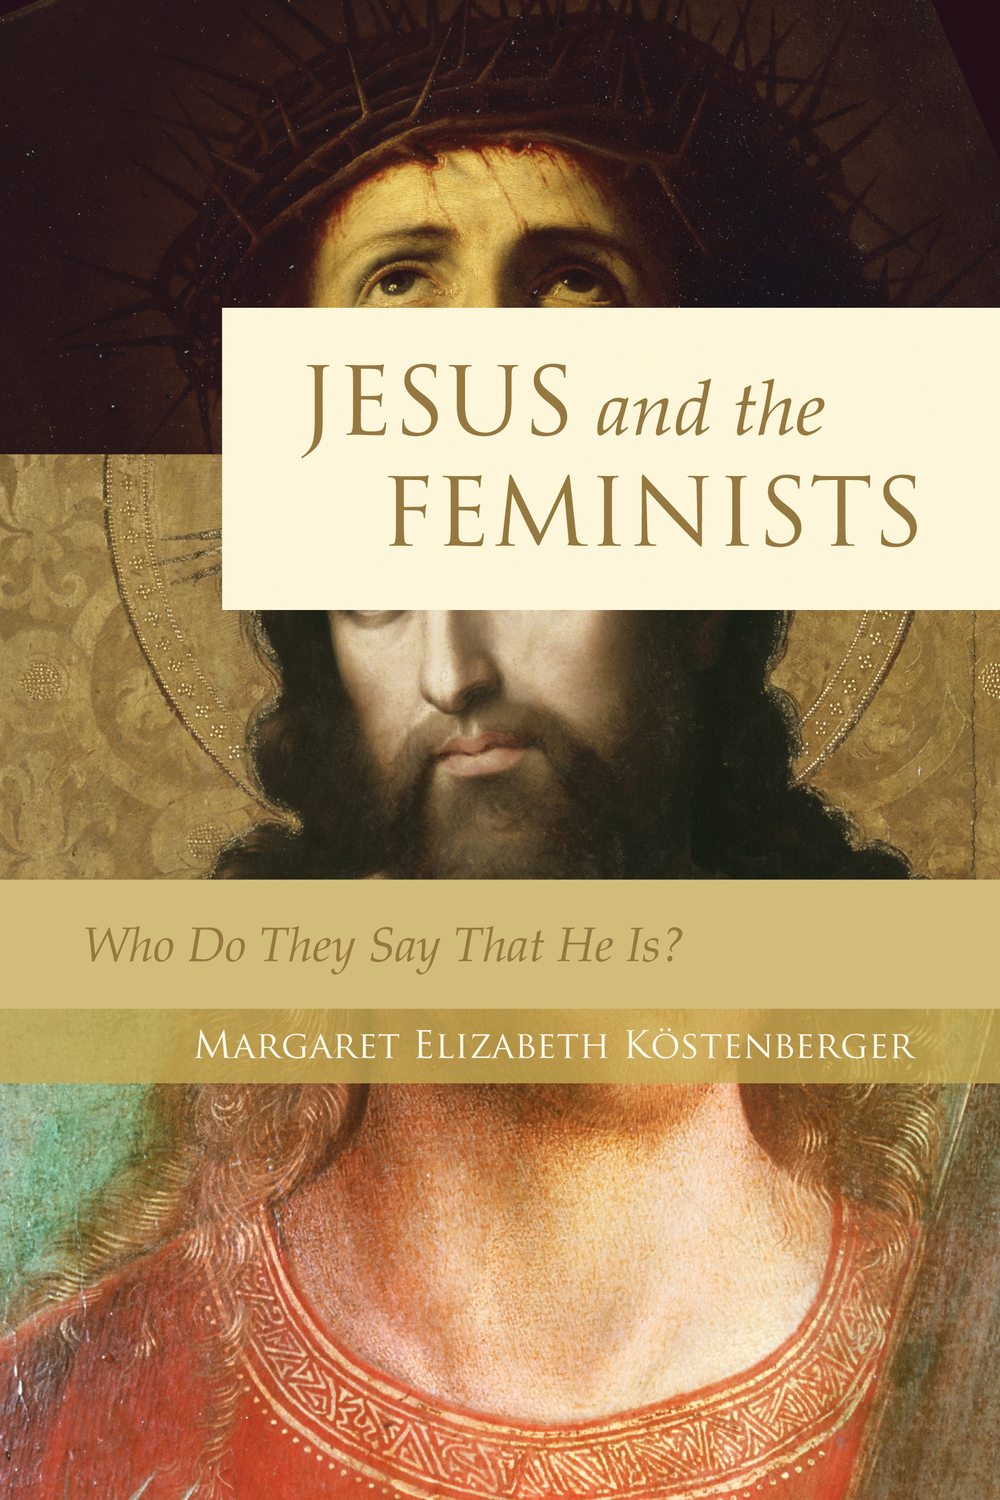 Jesus and the Feminists